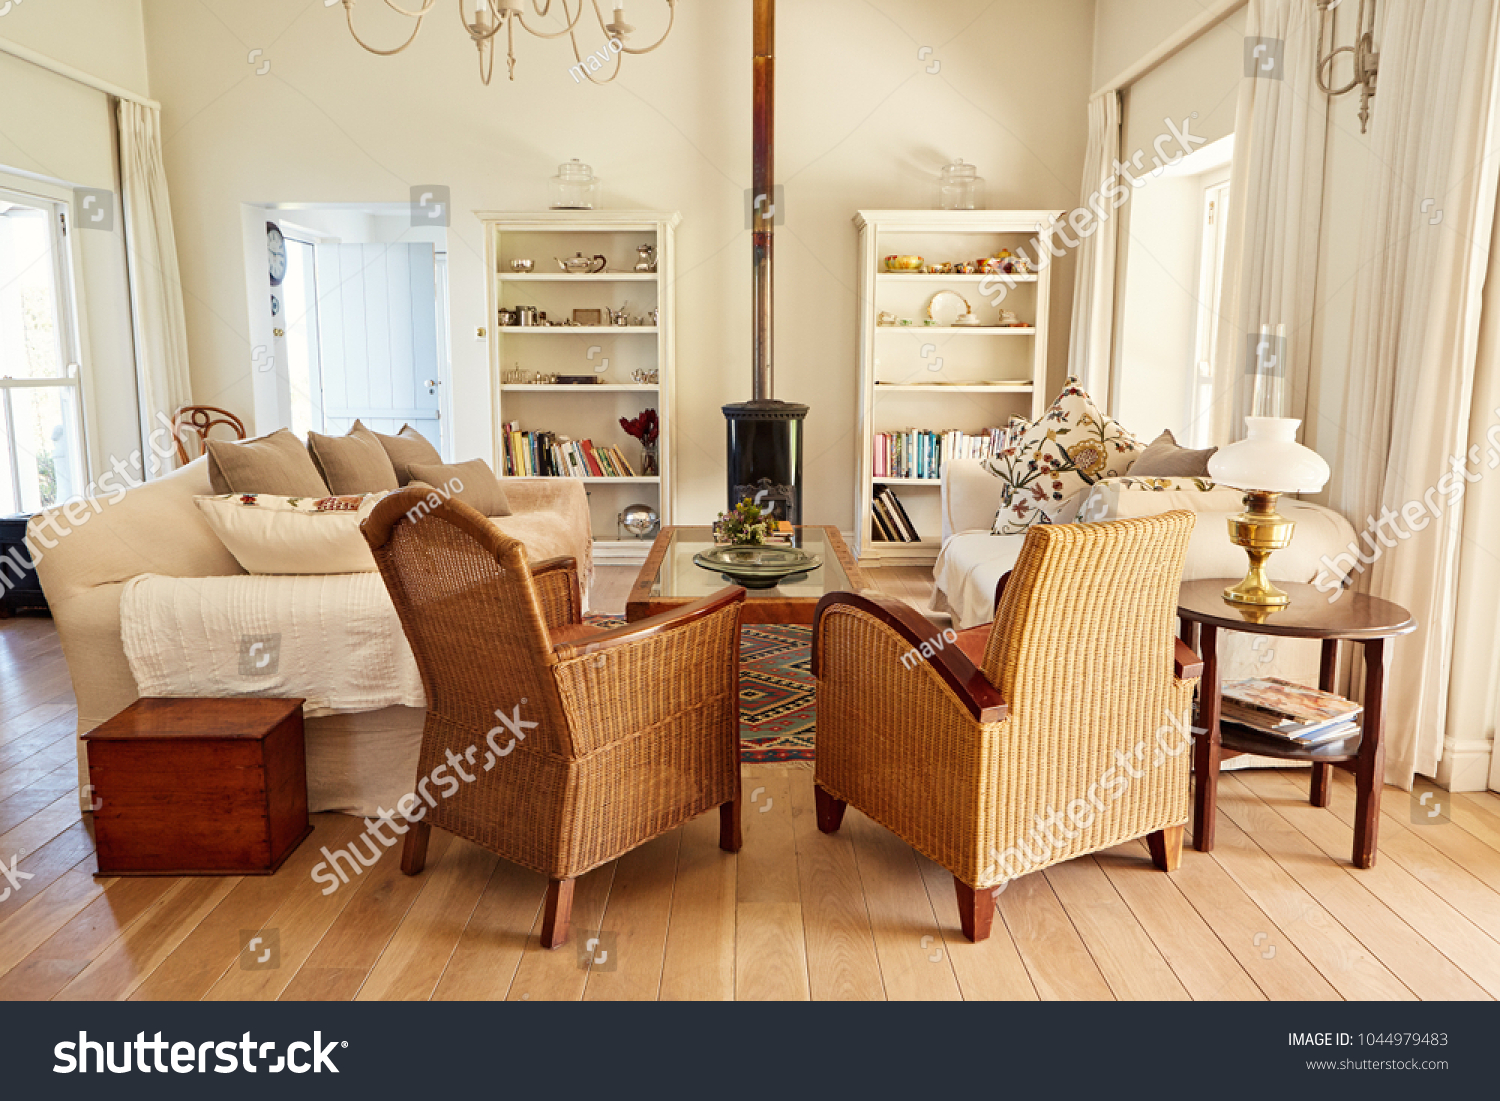 Interior Country Style Living Room Chairs Stock Photo Edit Now 1044979483